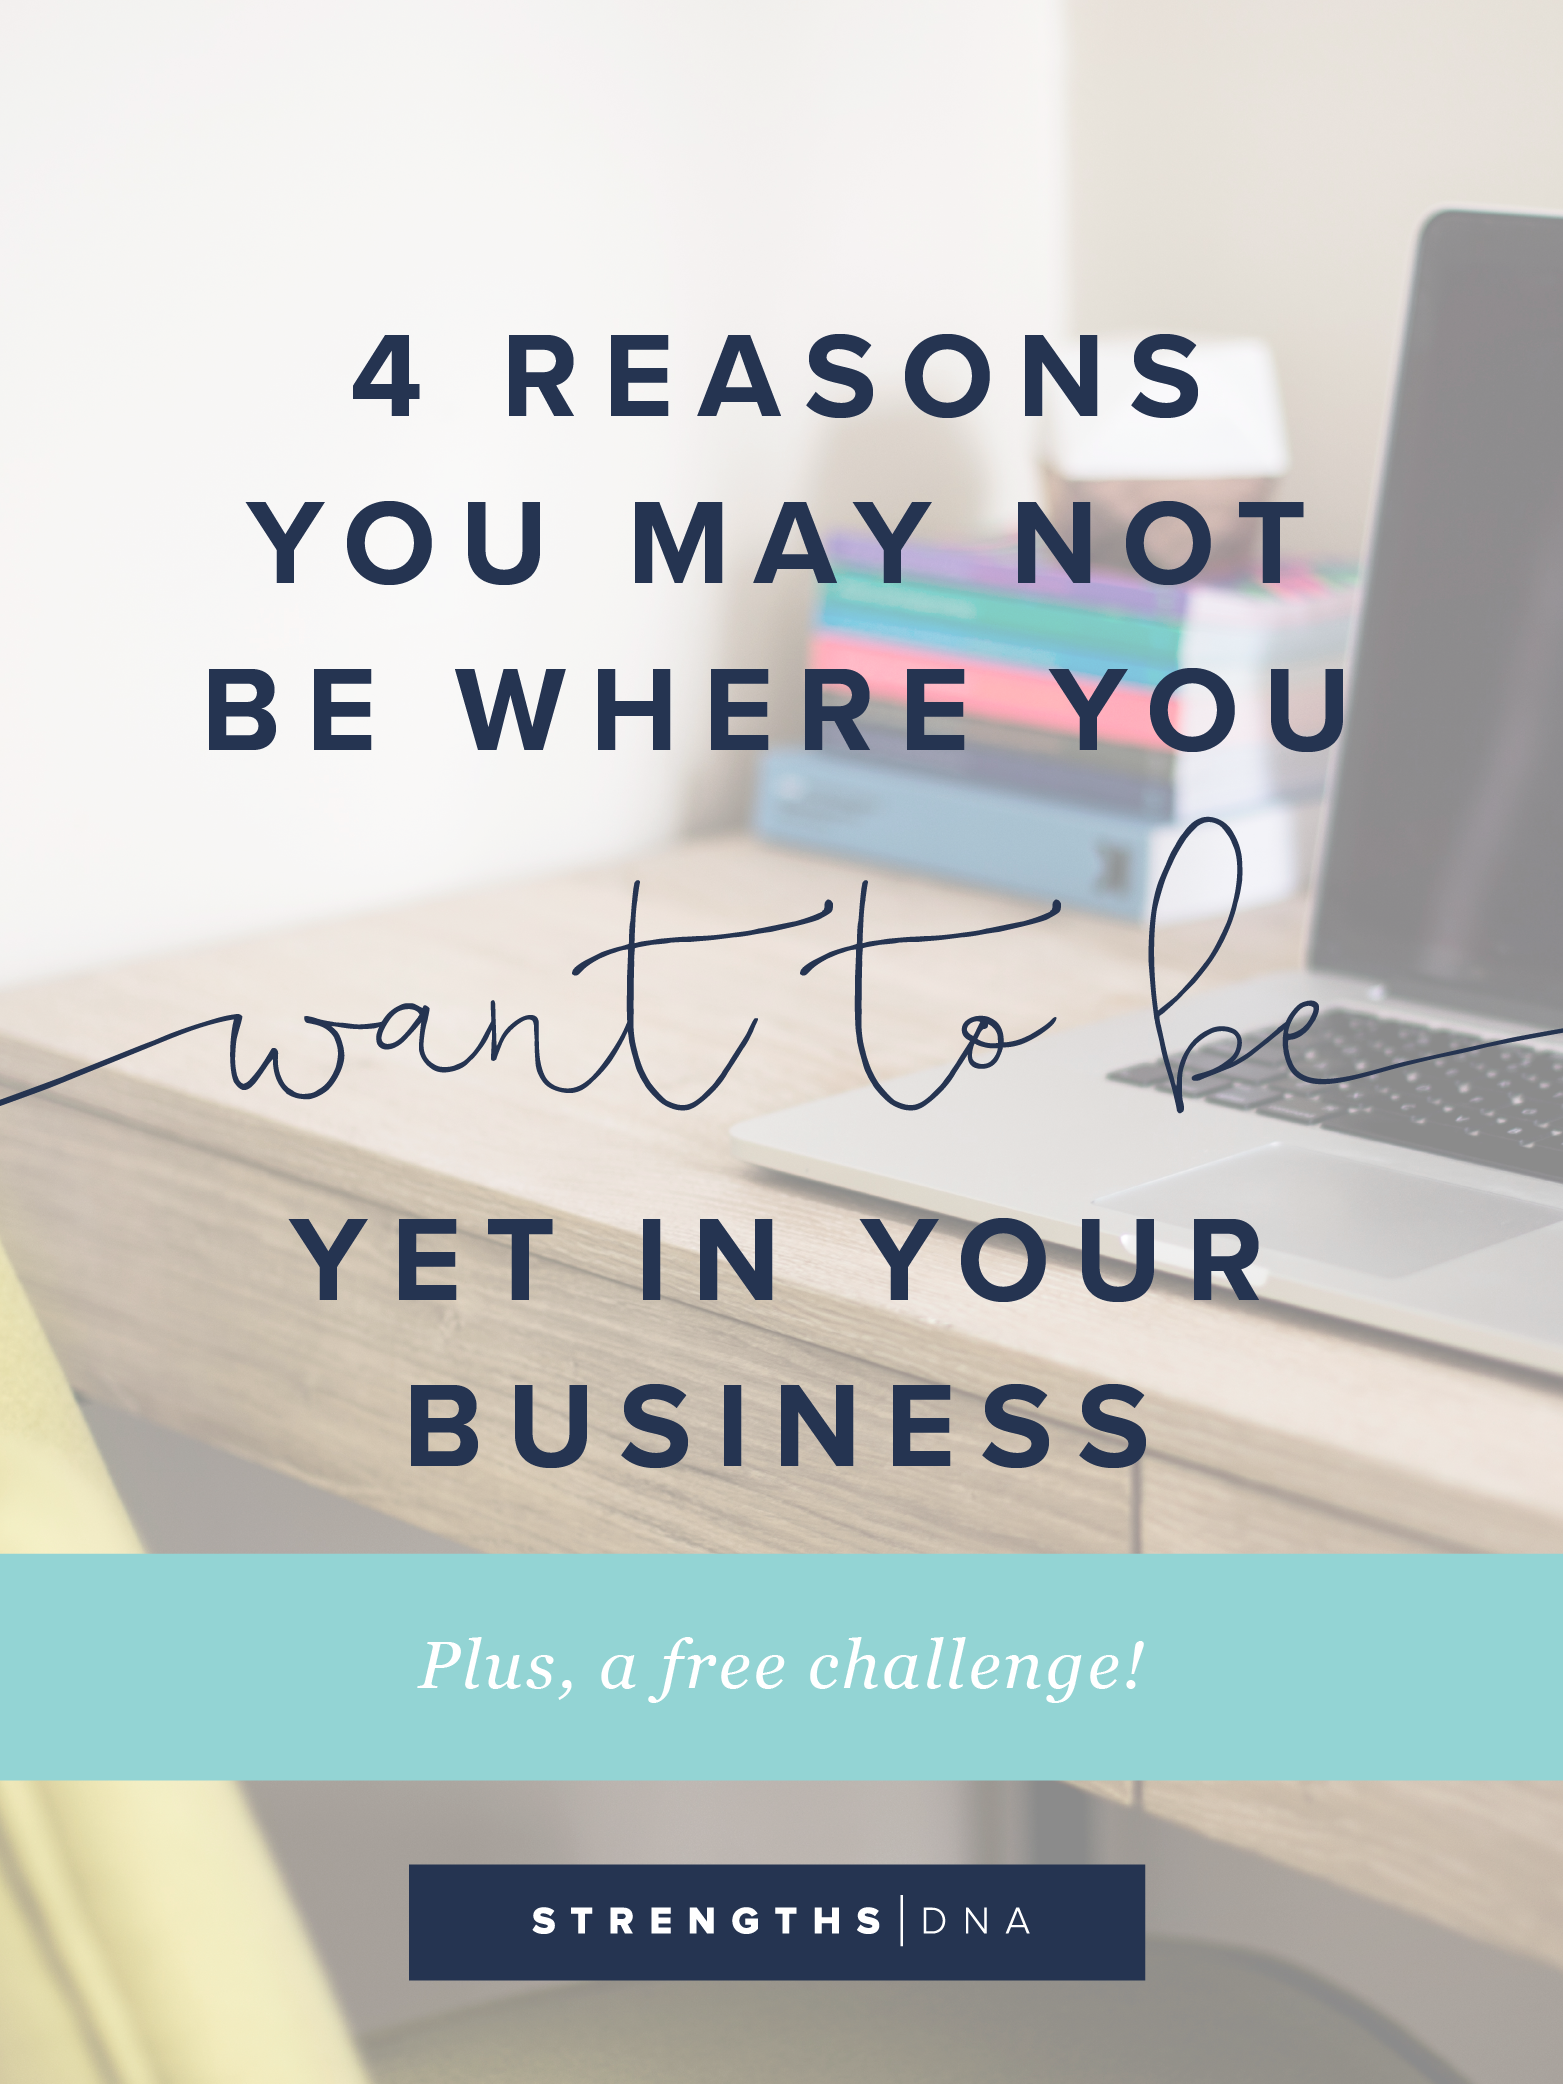 4 reasons you may not be where you want to be yet in your business blog-01.png